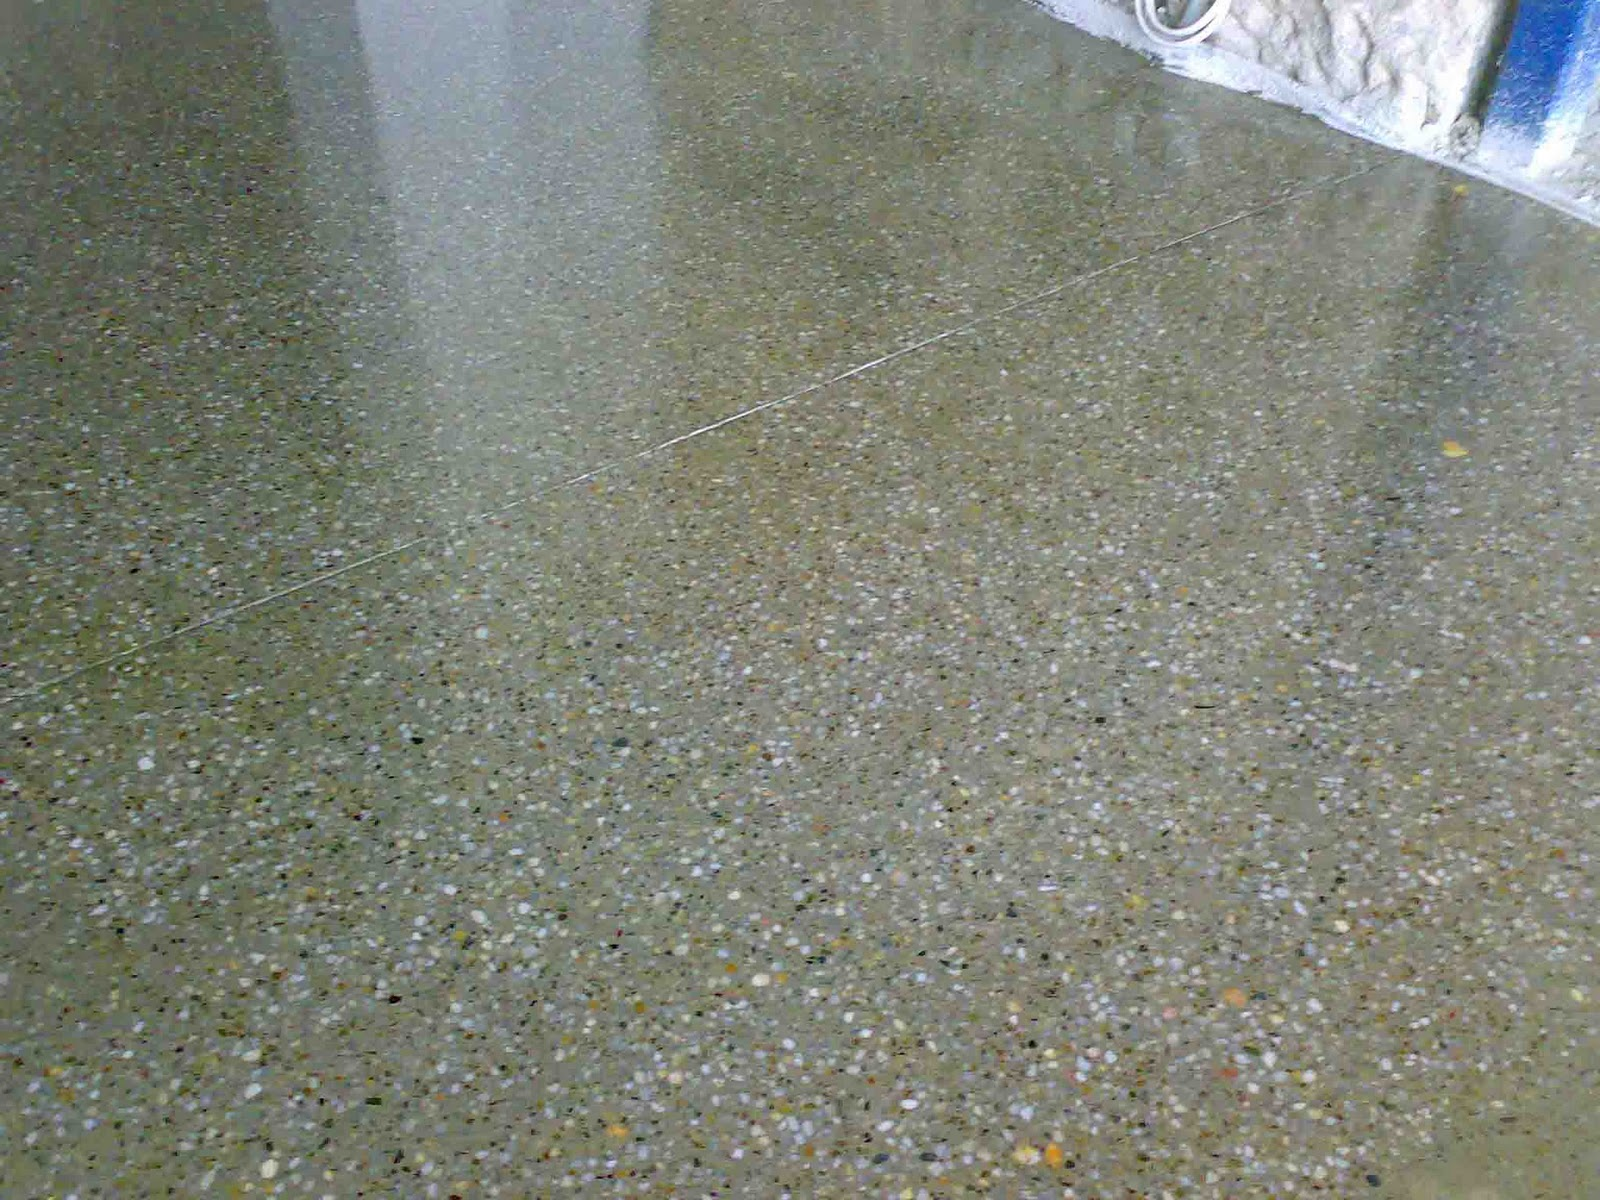 Interior design 3311 december 2011 for Bleach on concrete floor